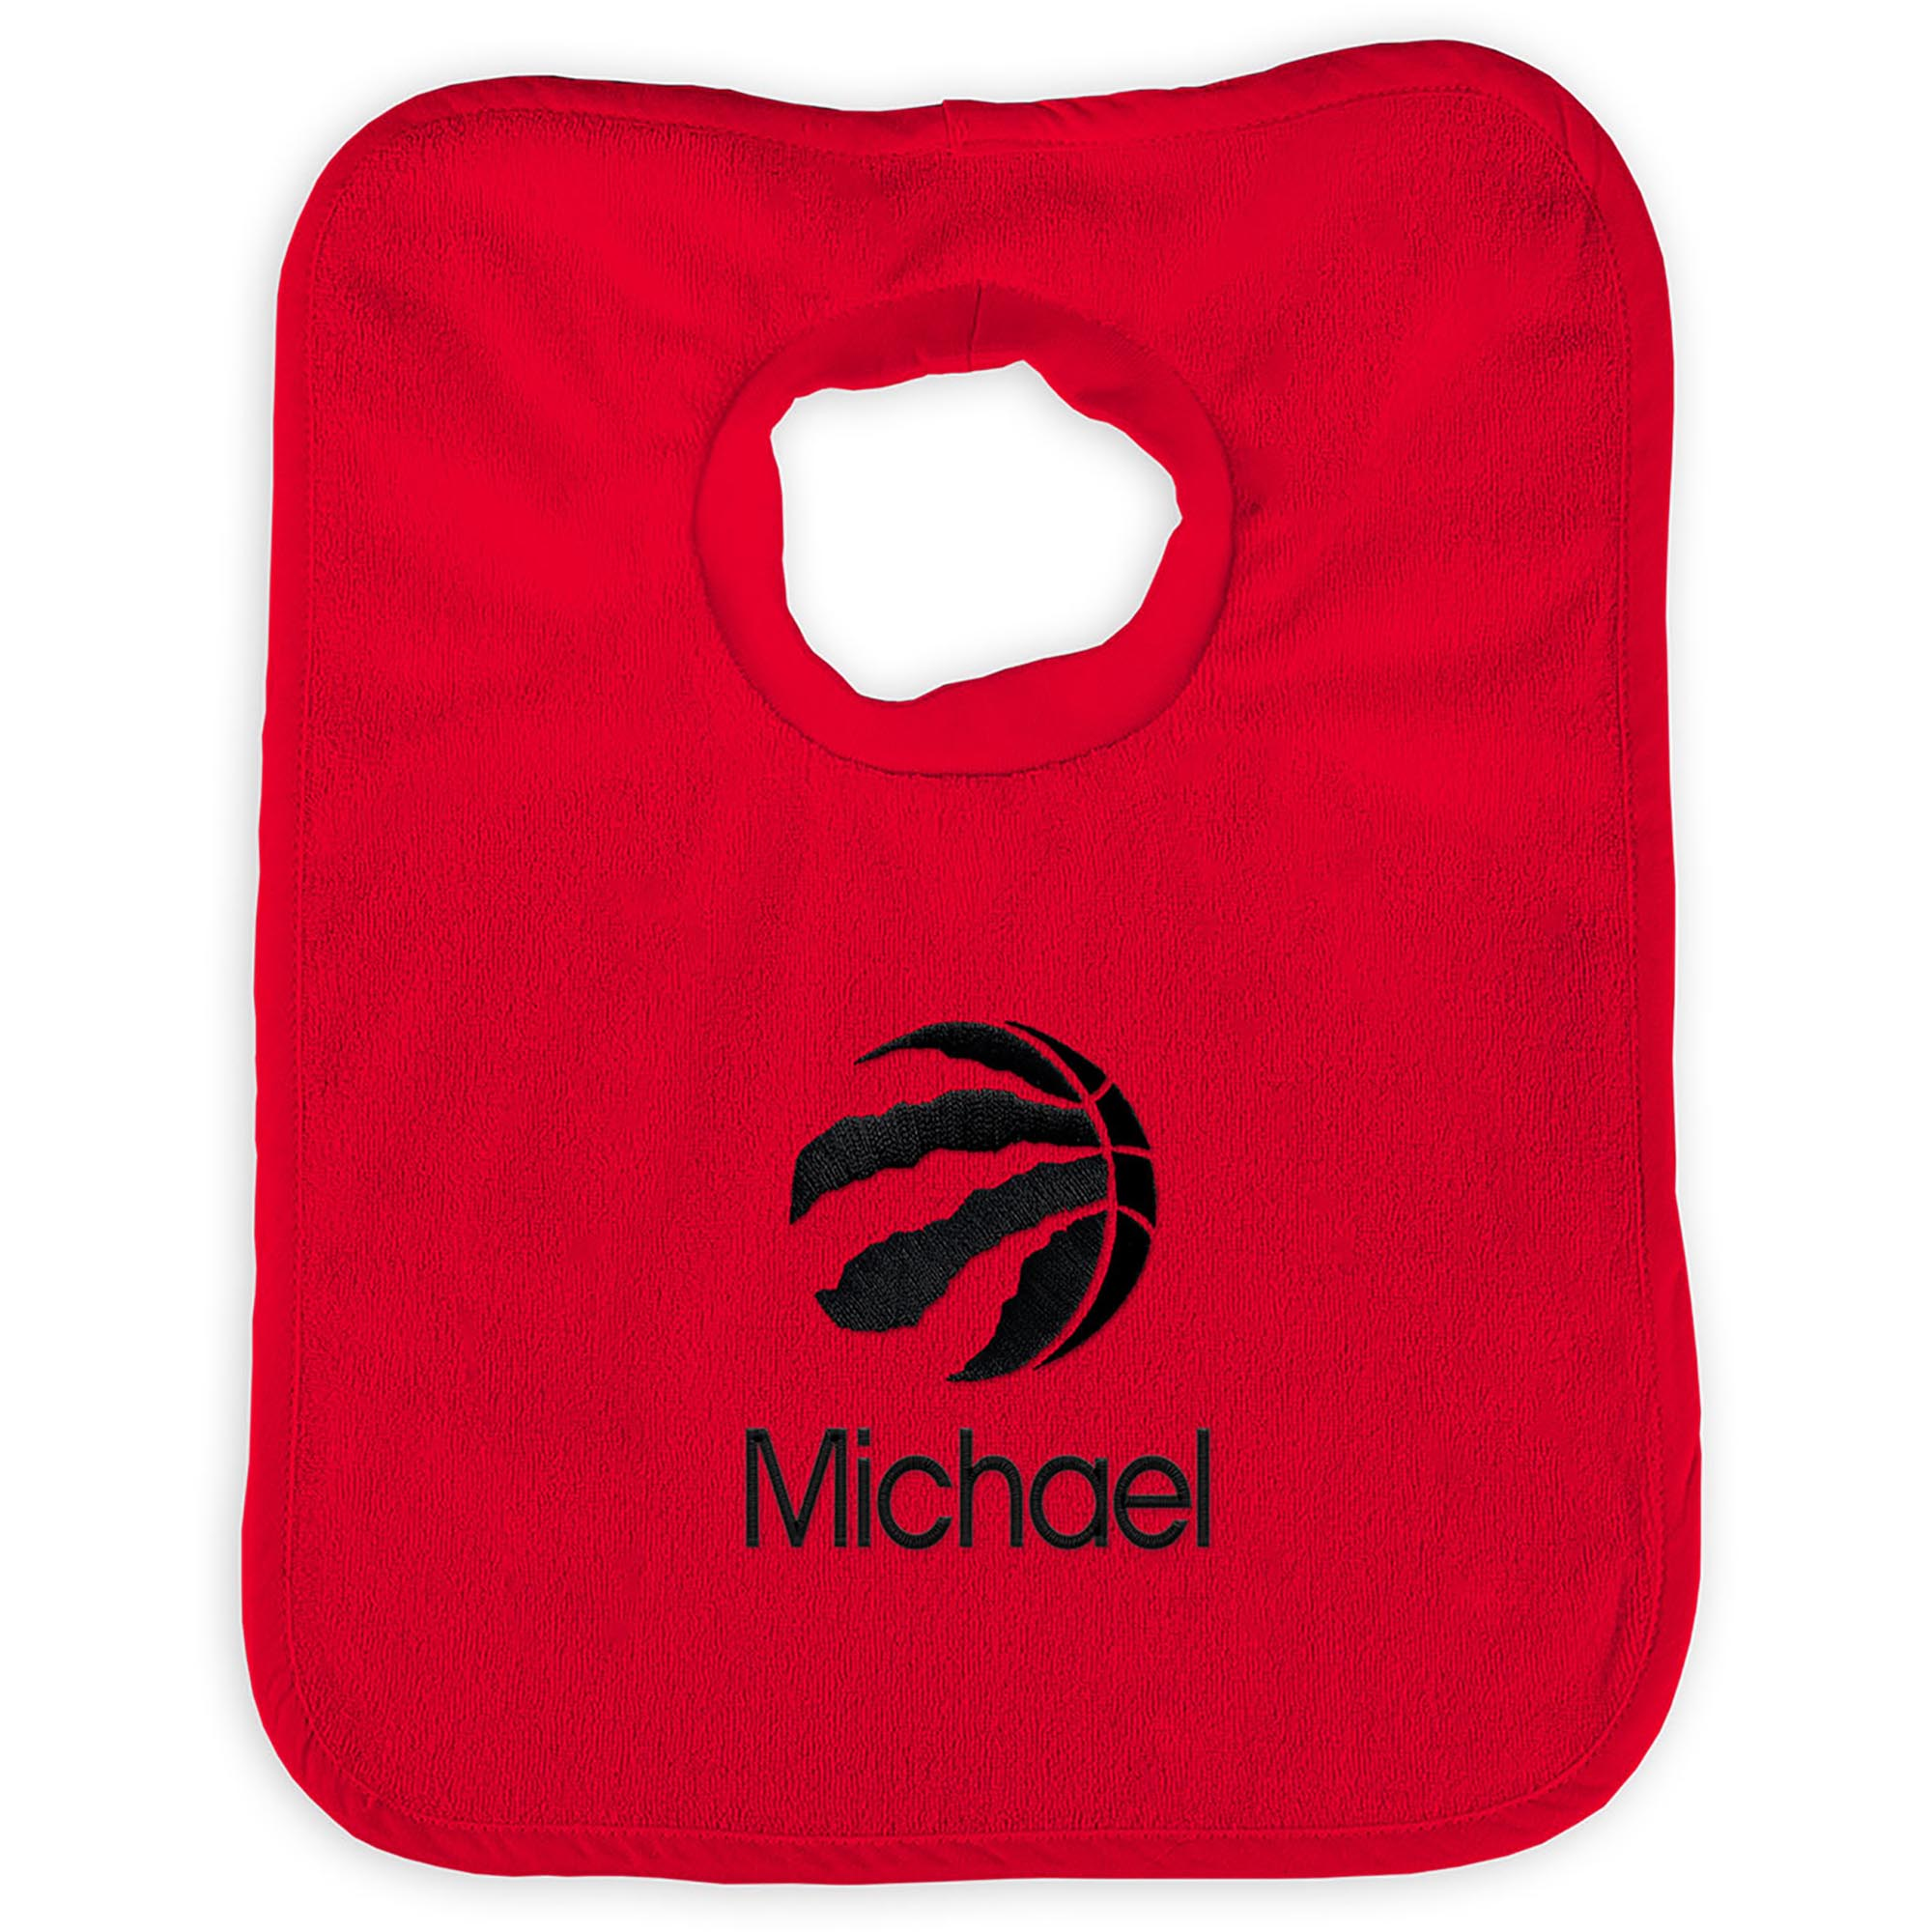 Toronto Raptors Infant Personalized Bib - Red